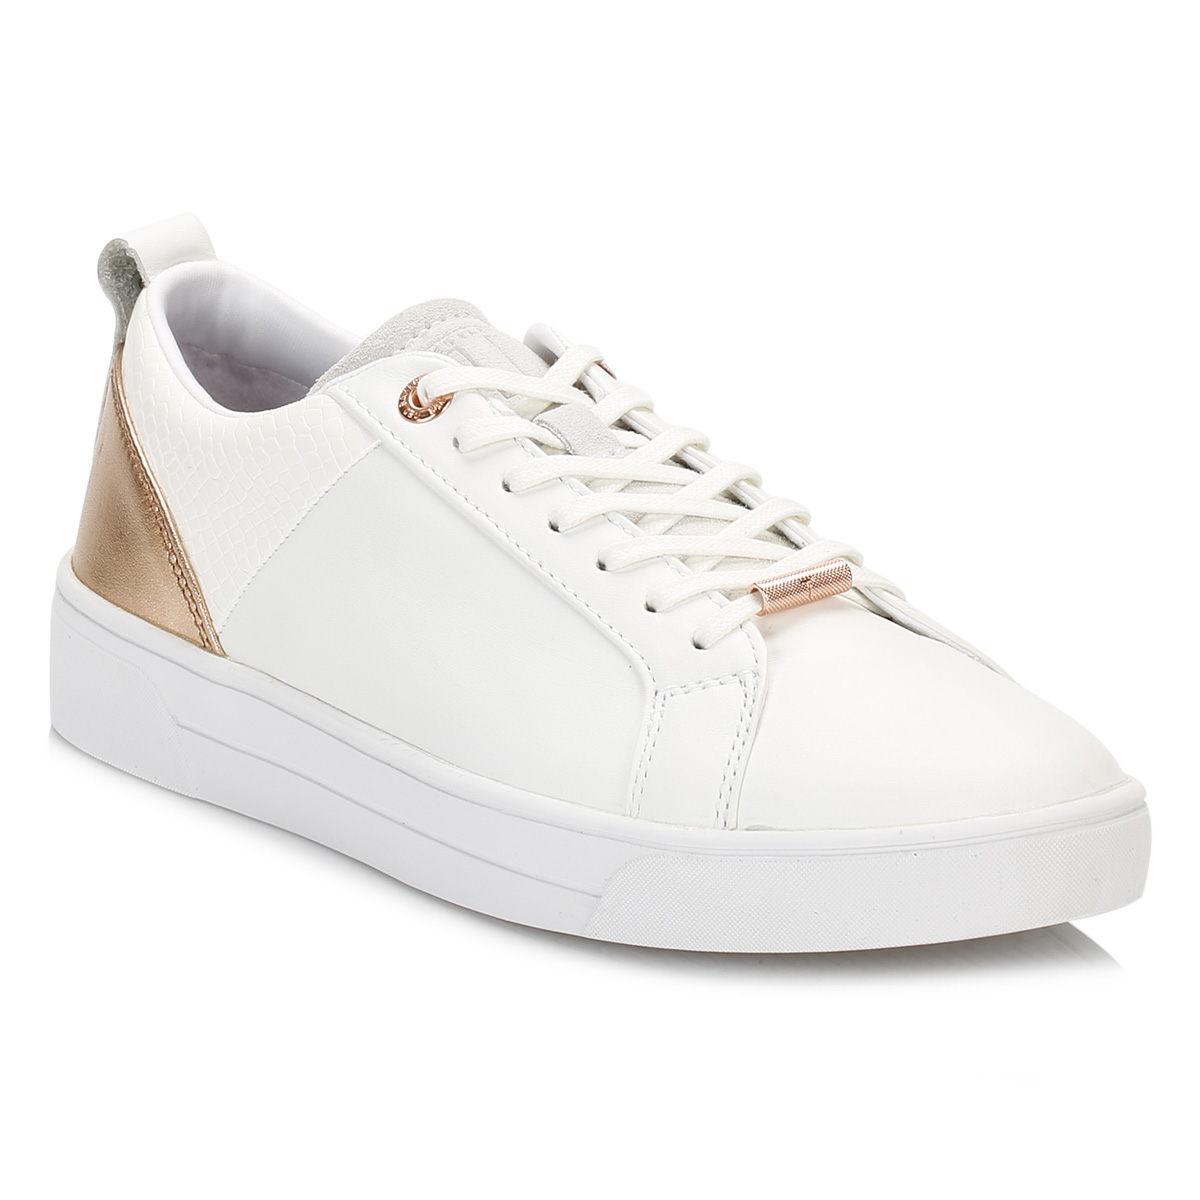 e84f8faffe9f Ted Baker Womens Trainers White Rose Gold Kulei Stylish Shoes Casual ...